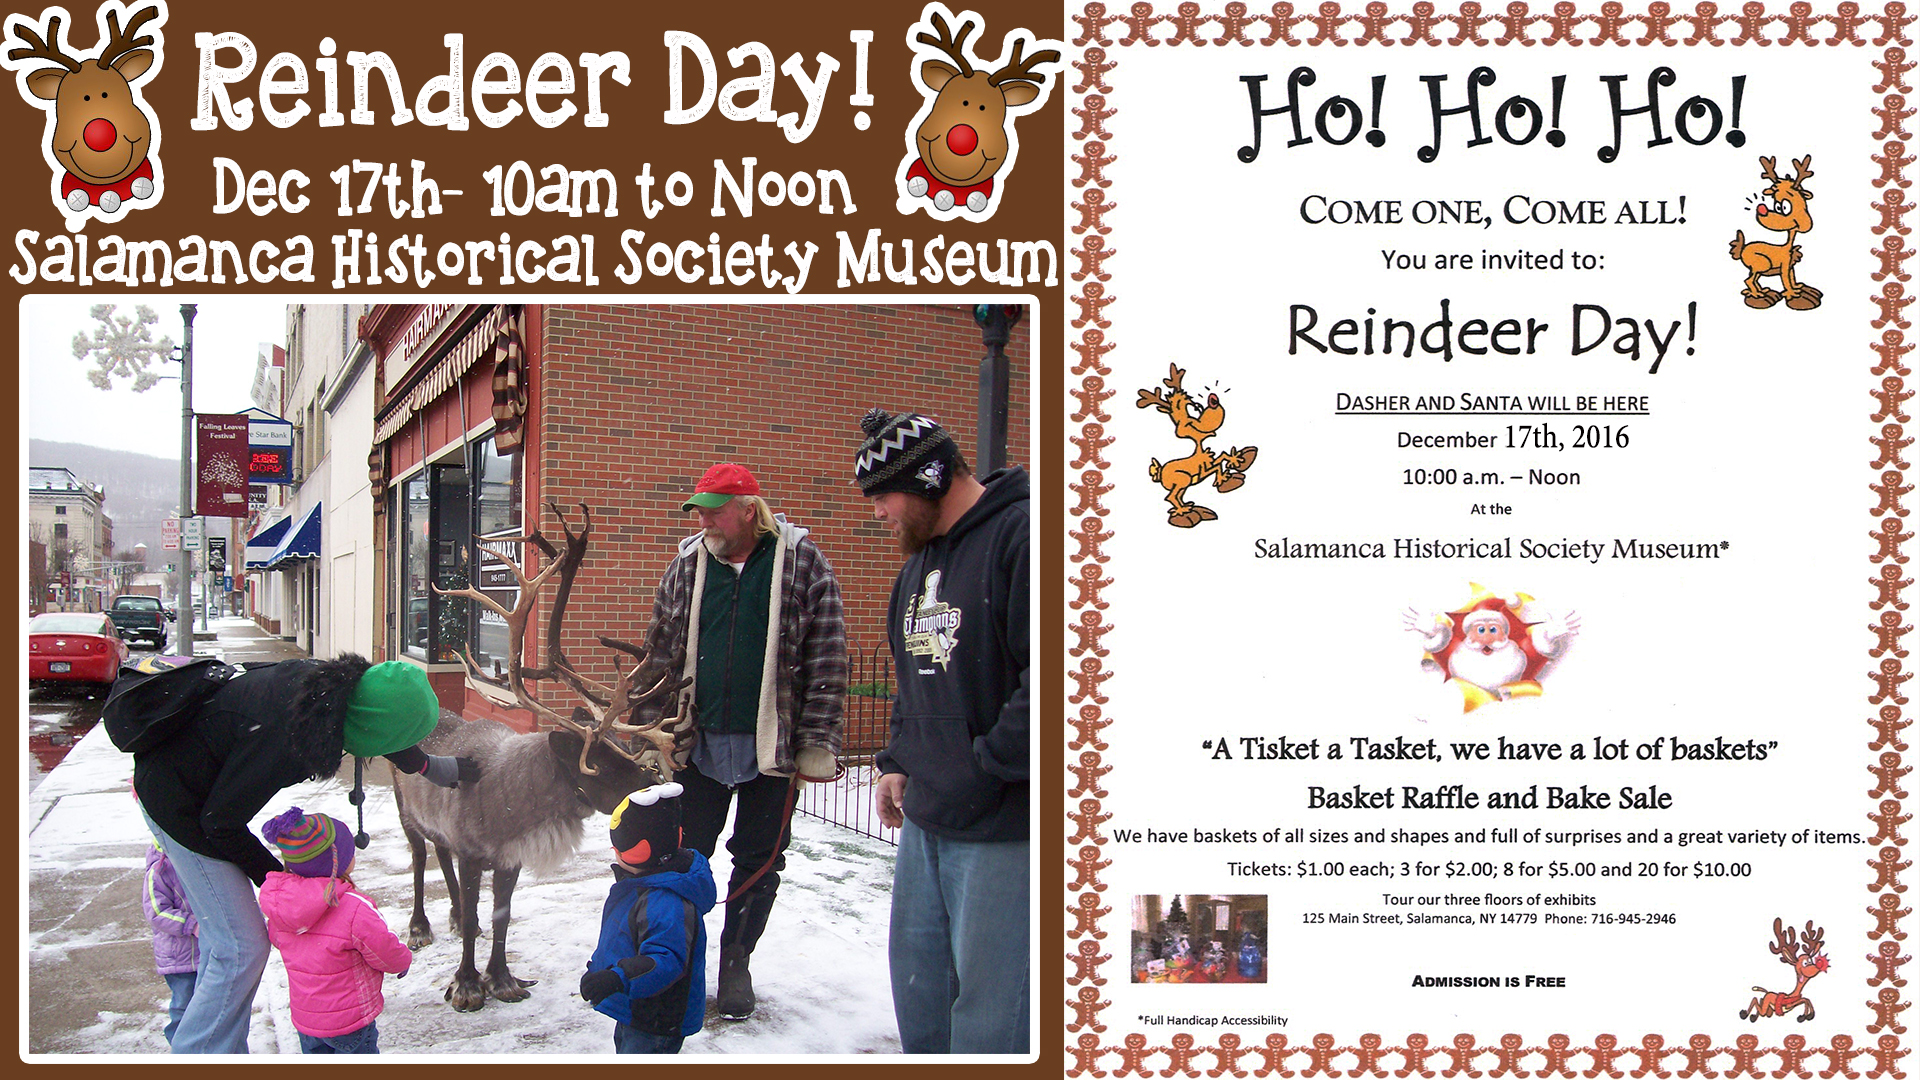 Reindeer Day at the Salamanca Historical Society Museum